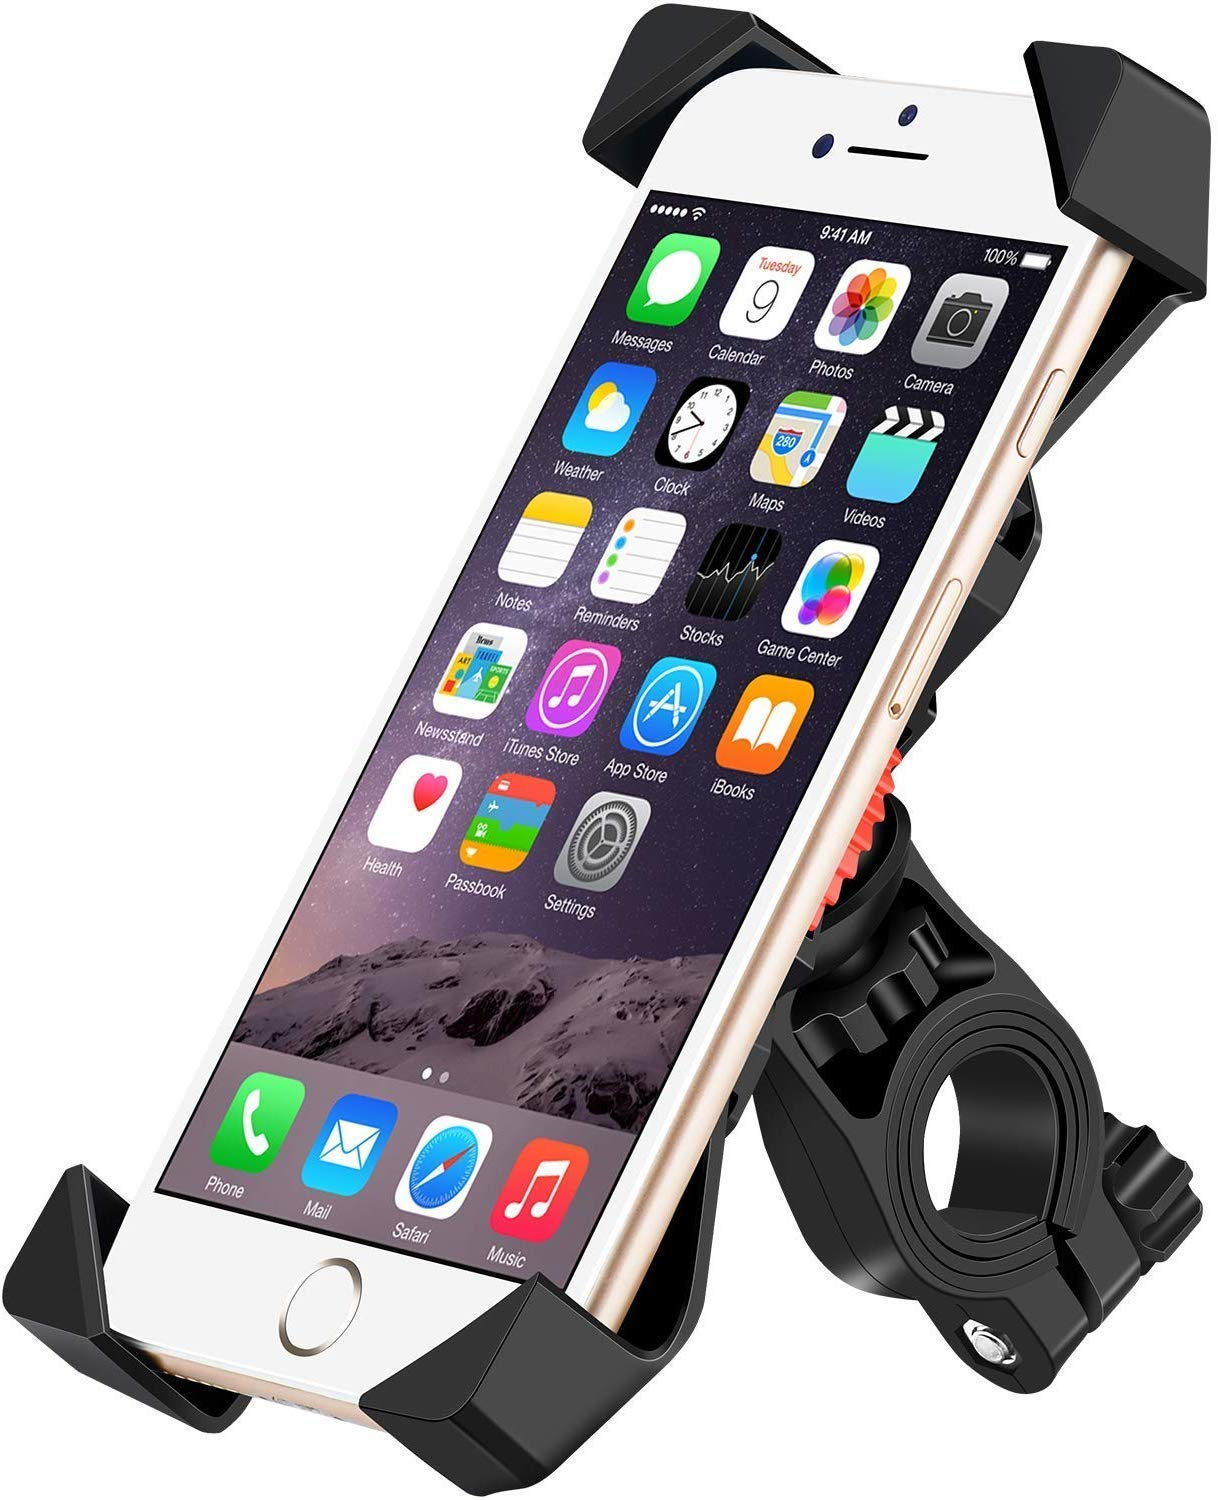 magicelec Bike Phone Mount Bicycle Holder/Bike Accessories/Bike Phone Holder /360° Rotation Universal Cradle Clamp